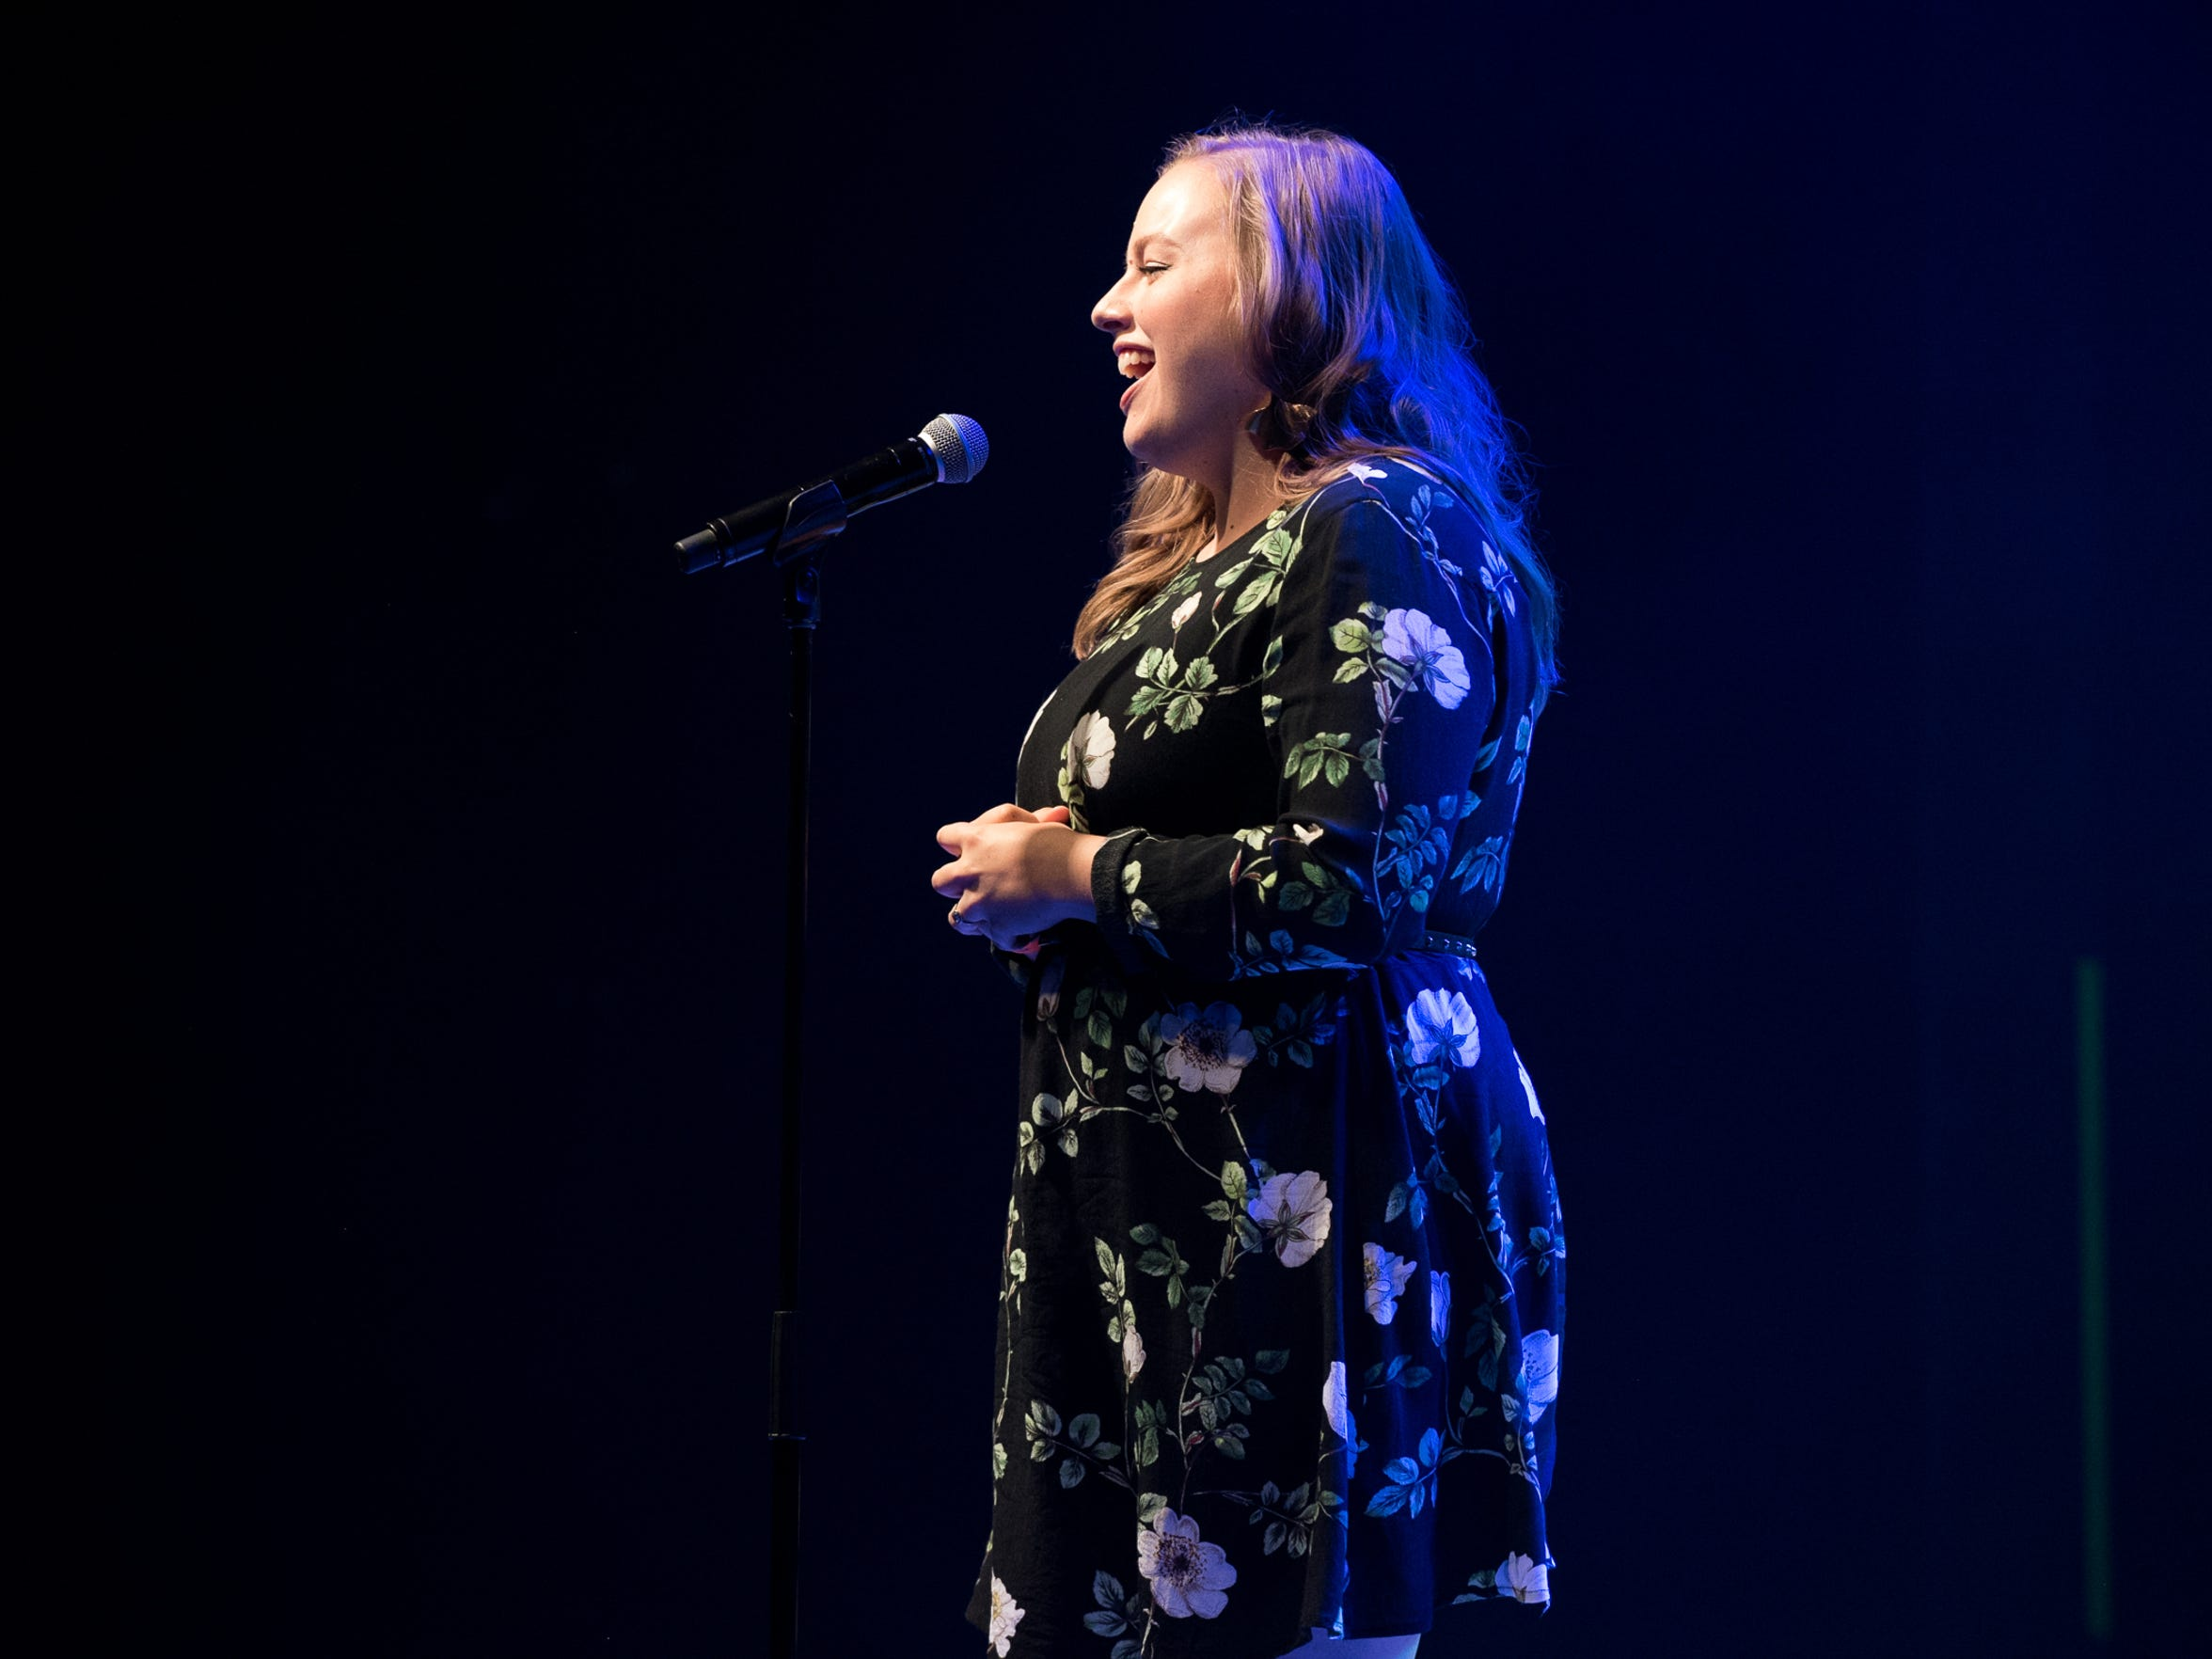 Kaila White introduces the next storyteller  during Arizona Storytellers presents Stories About Stories at The Van Buren in Phoenix on Tuesday, July 17, 2018.